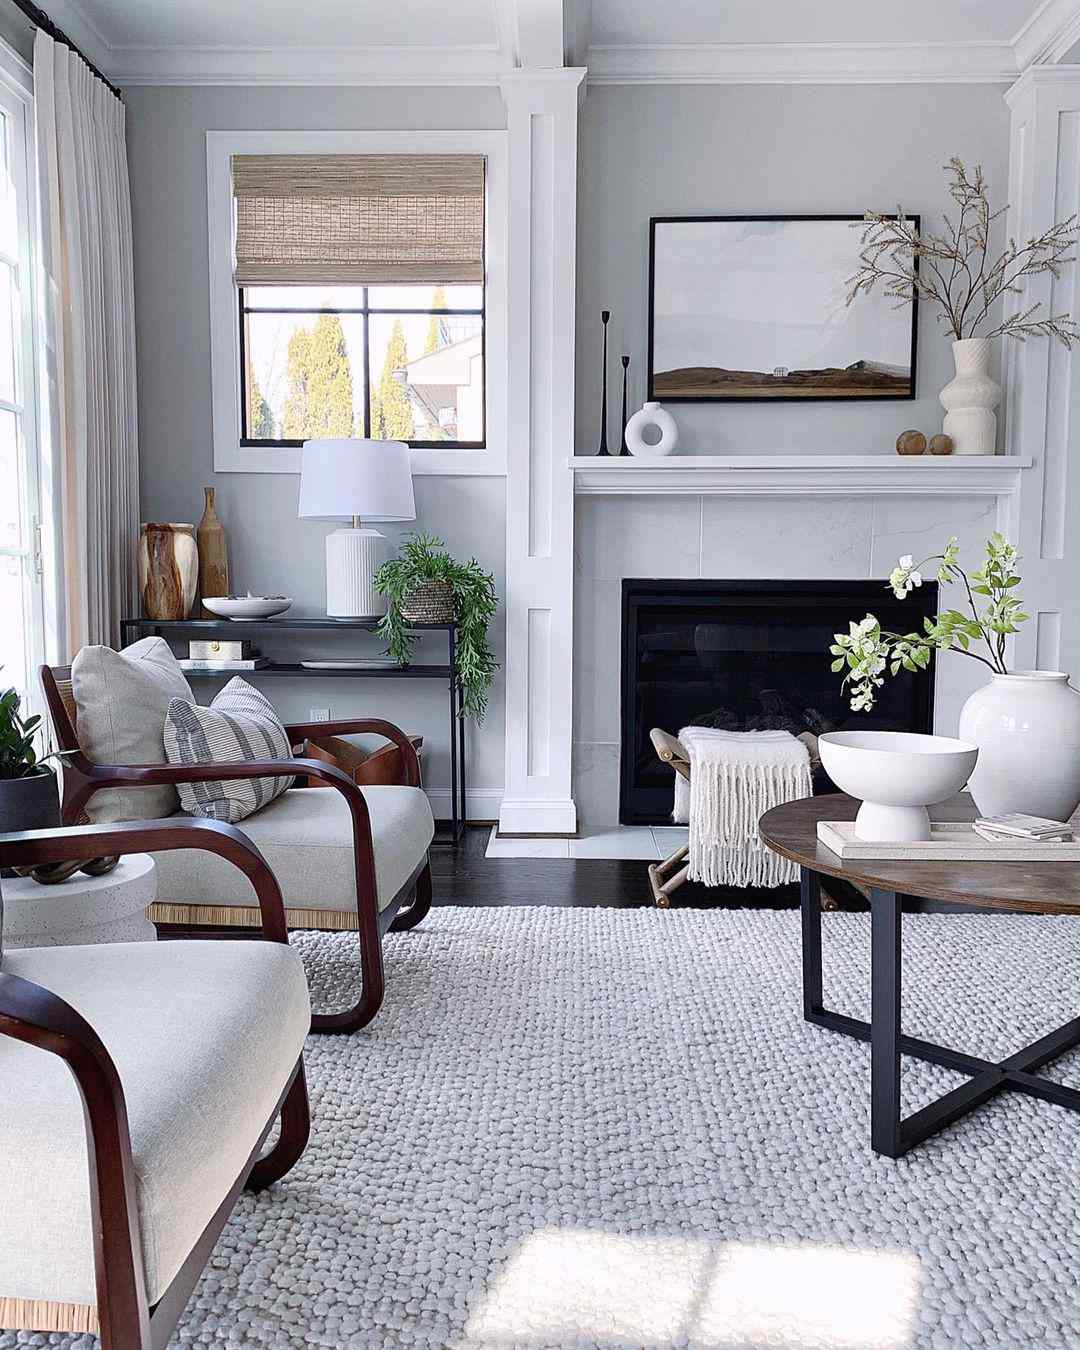 Neat living room with muted color palette.